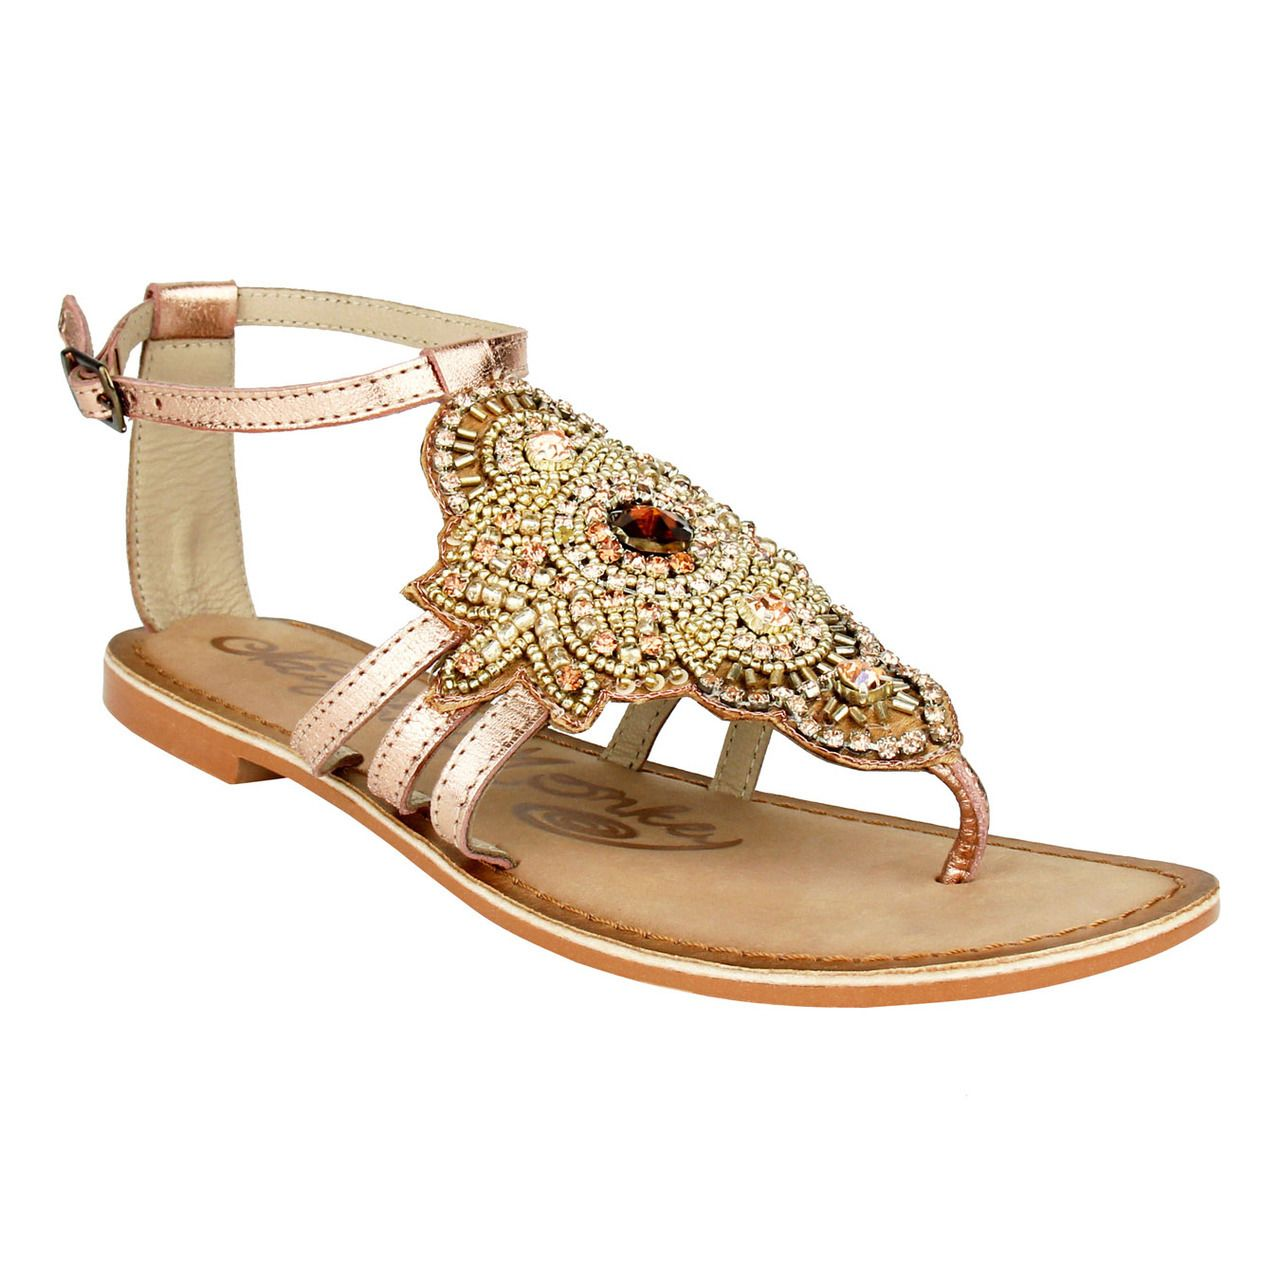 Naughty Monkey offers Women's Fashion Shoes for every shoe lover. Leave  behind the mundane fashion